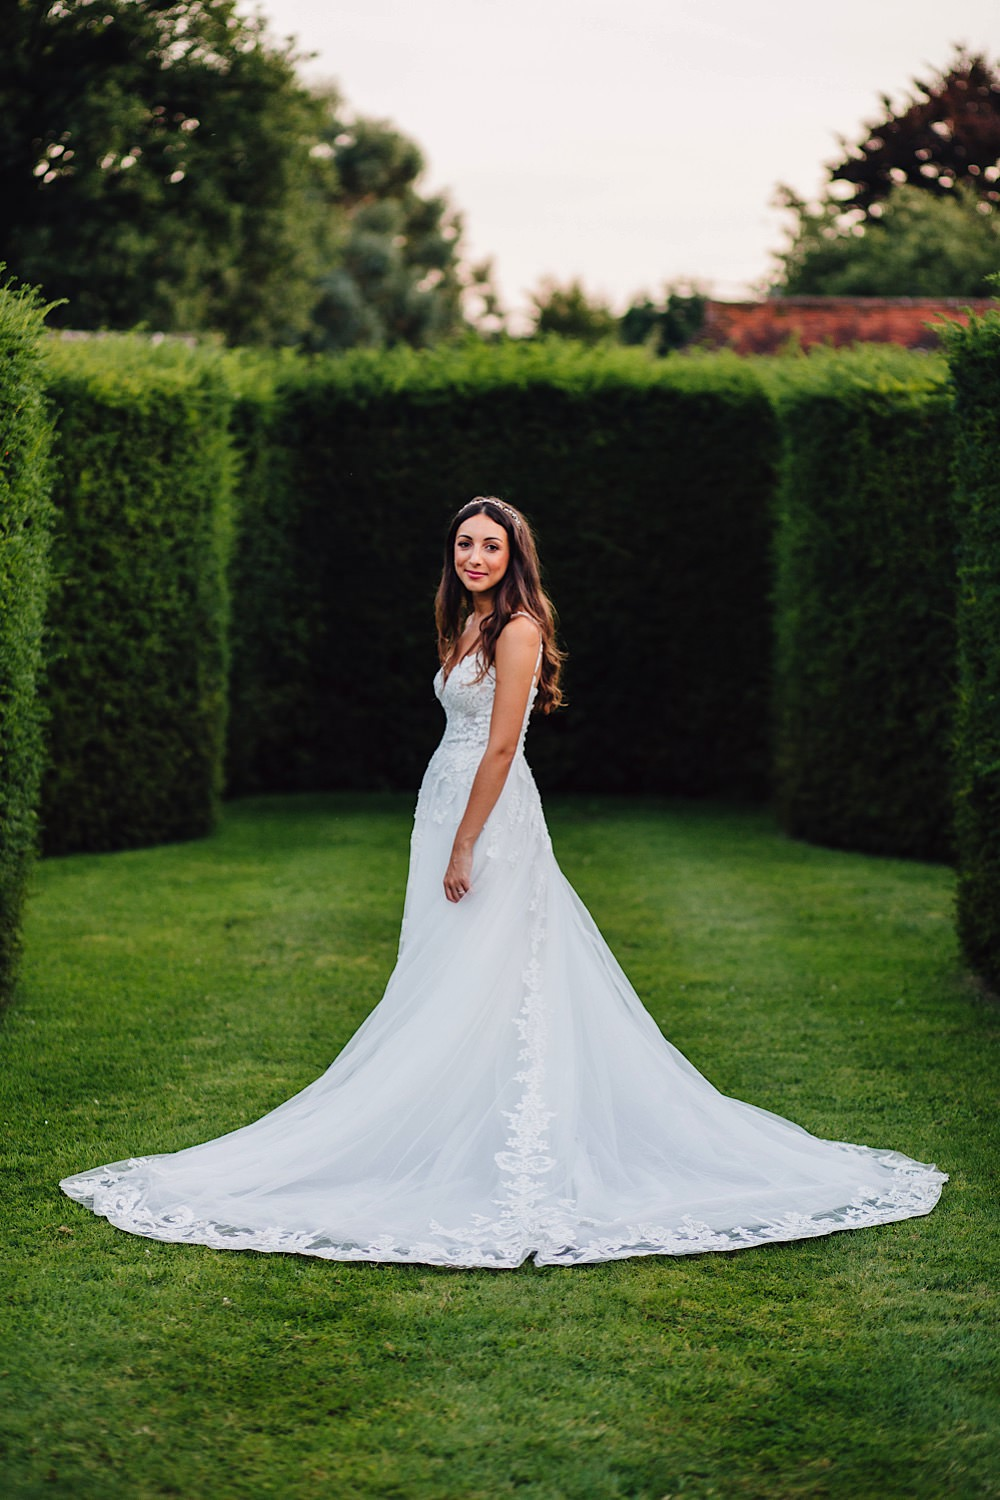 Bride Bridal Lace Dress Gown Veil Essense of Australia Great Fosters Wedding Roo Stain Photography